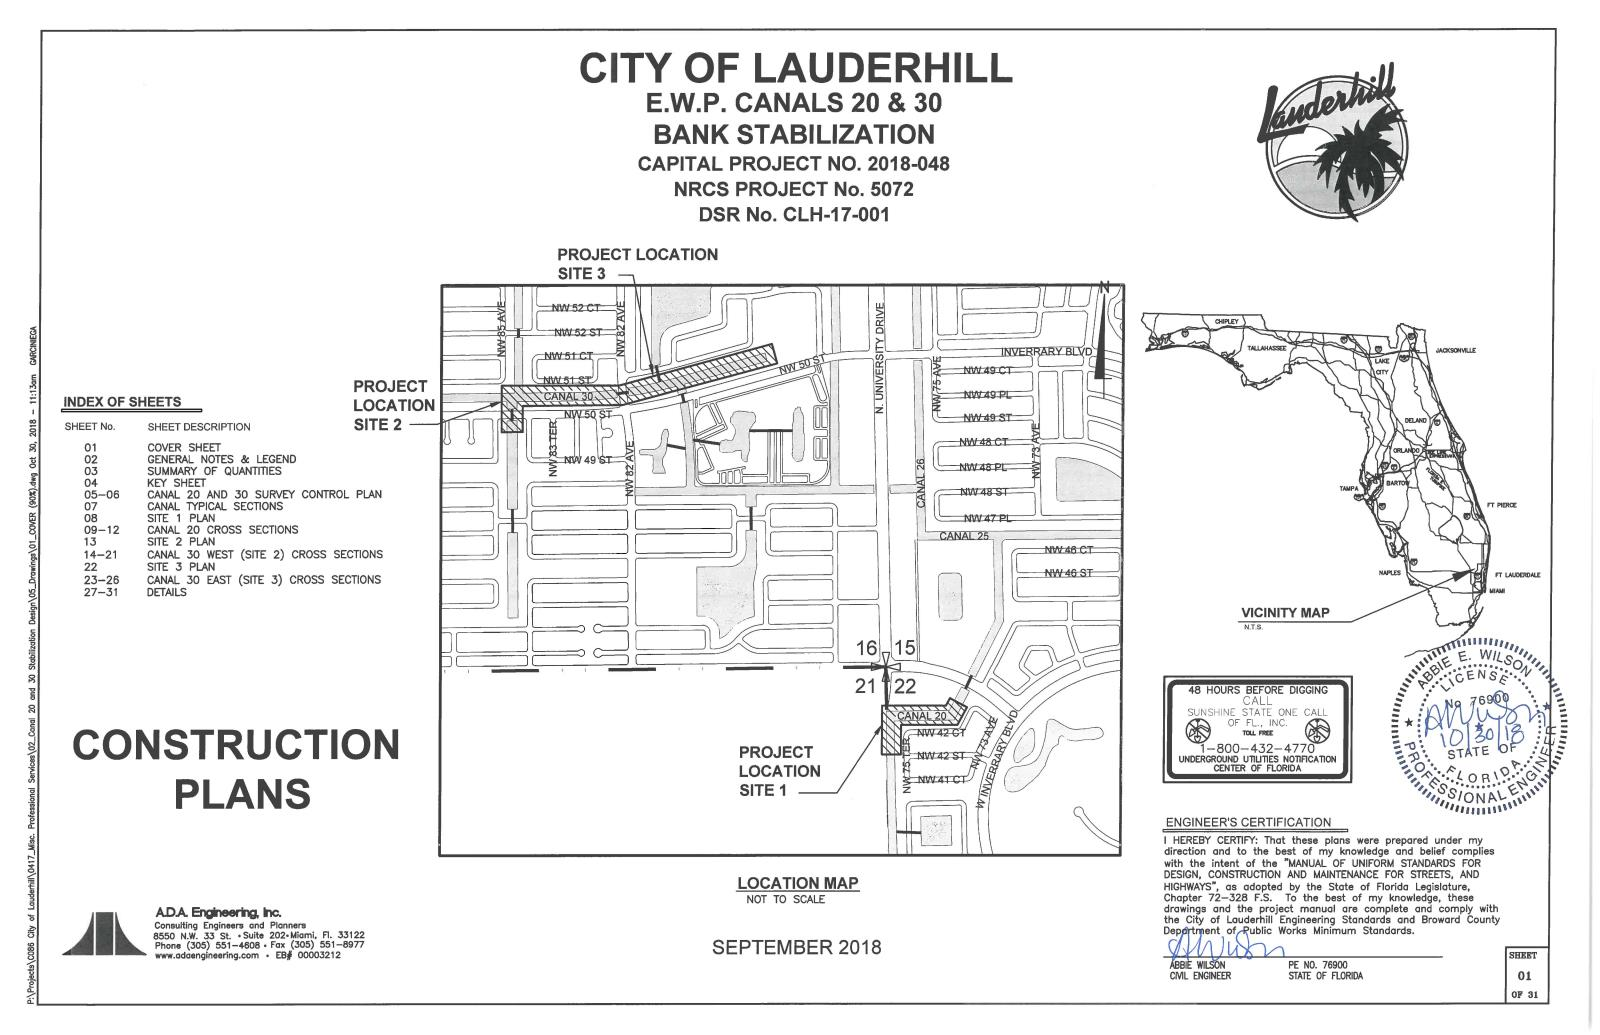 EWP Canals 20 & 30 Capital Improvement Project Location Map